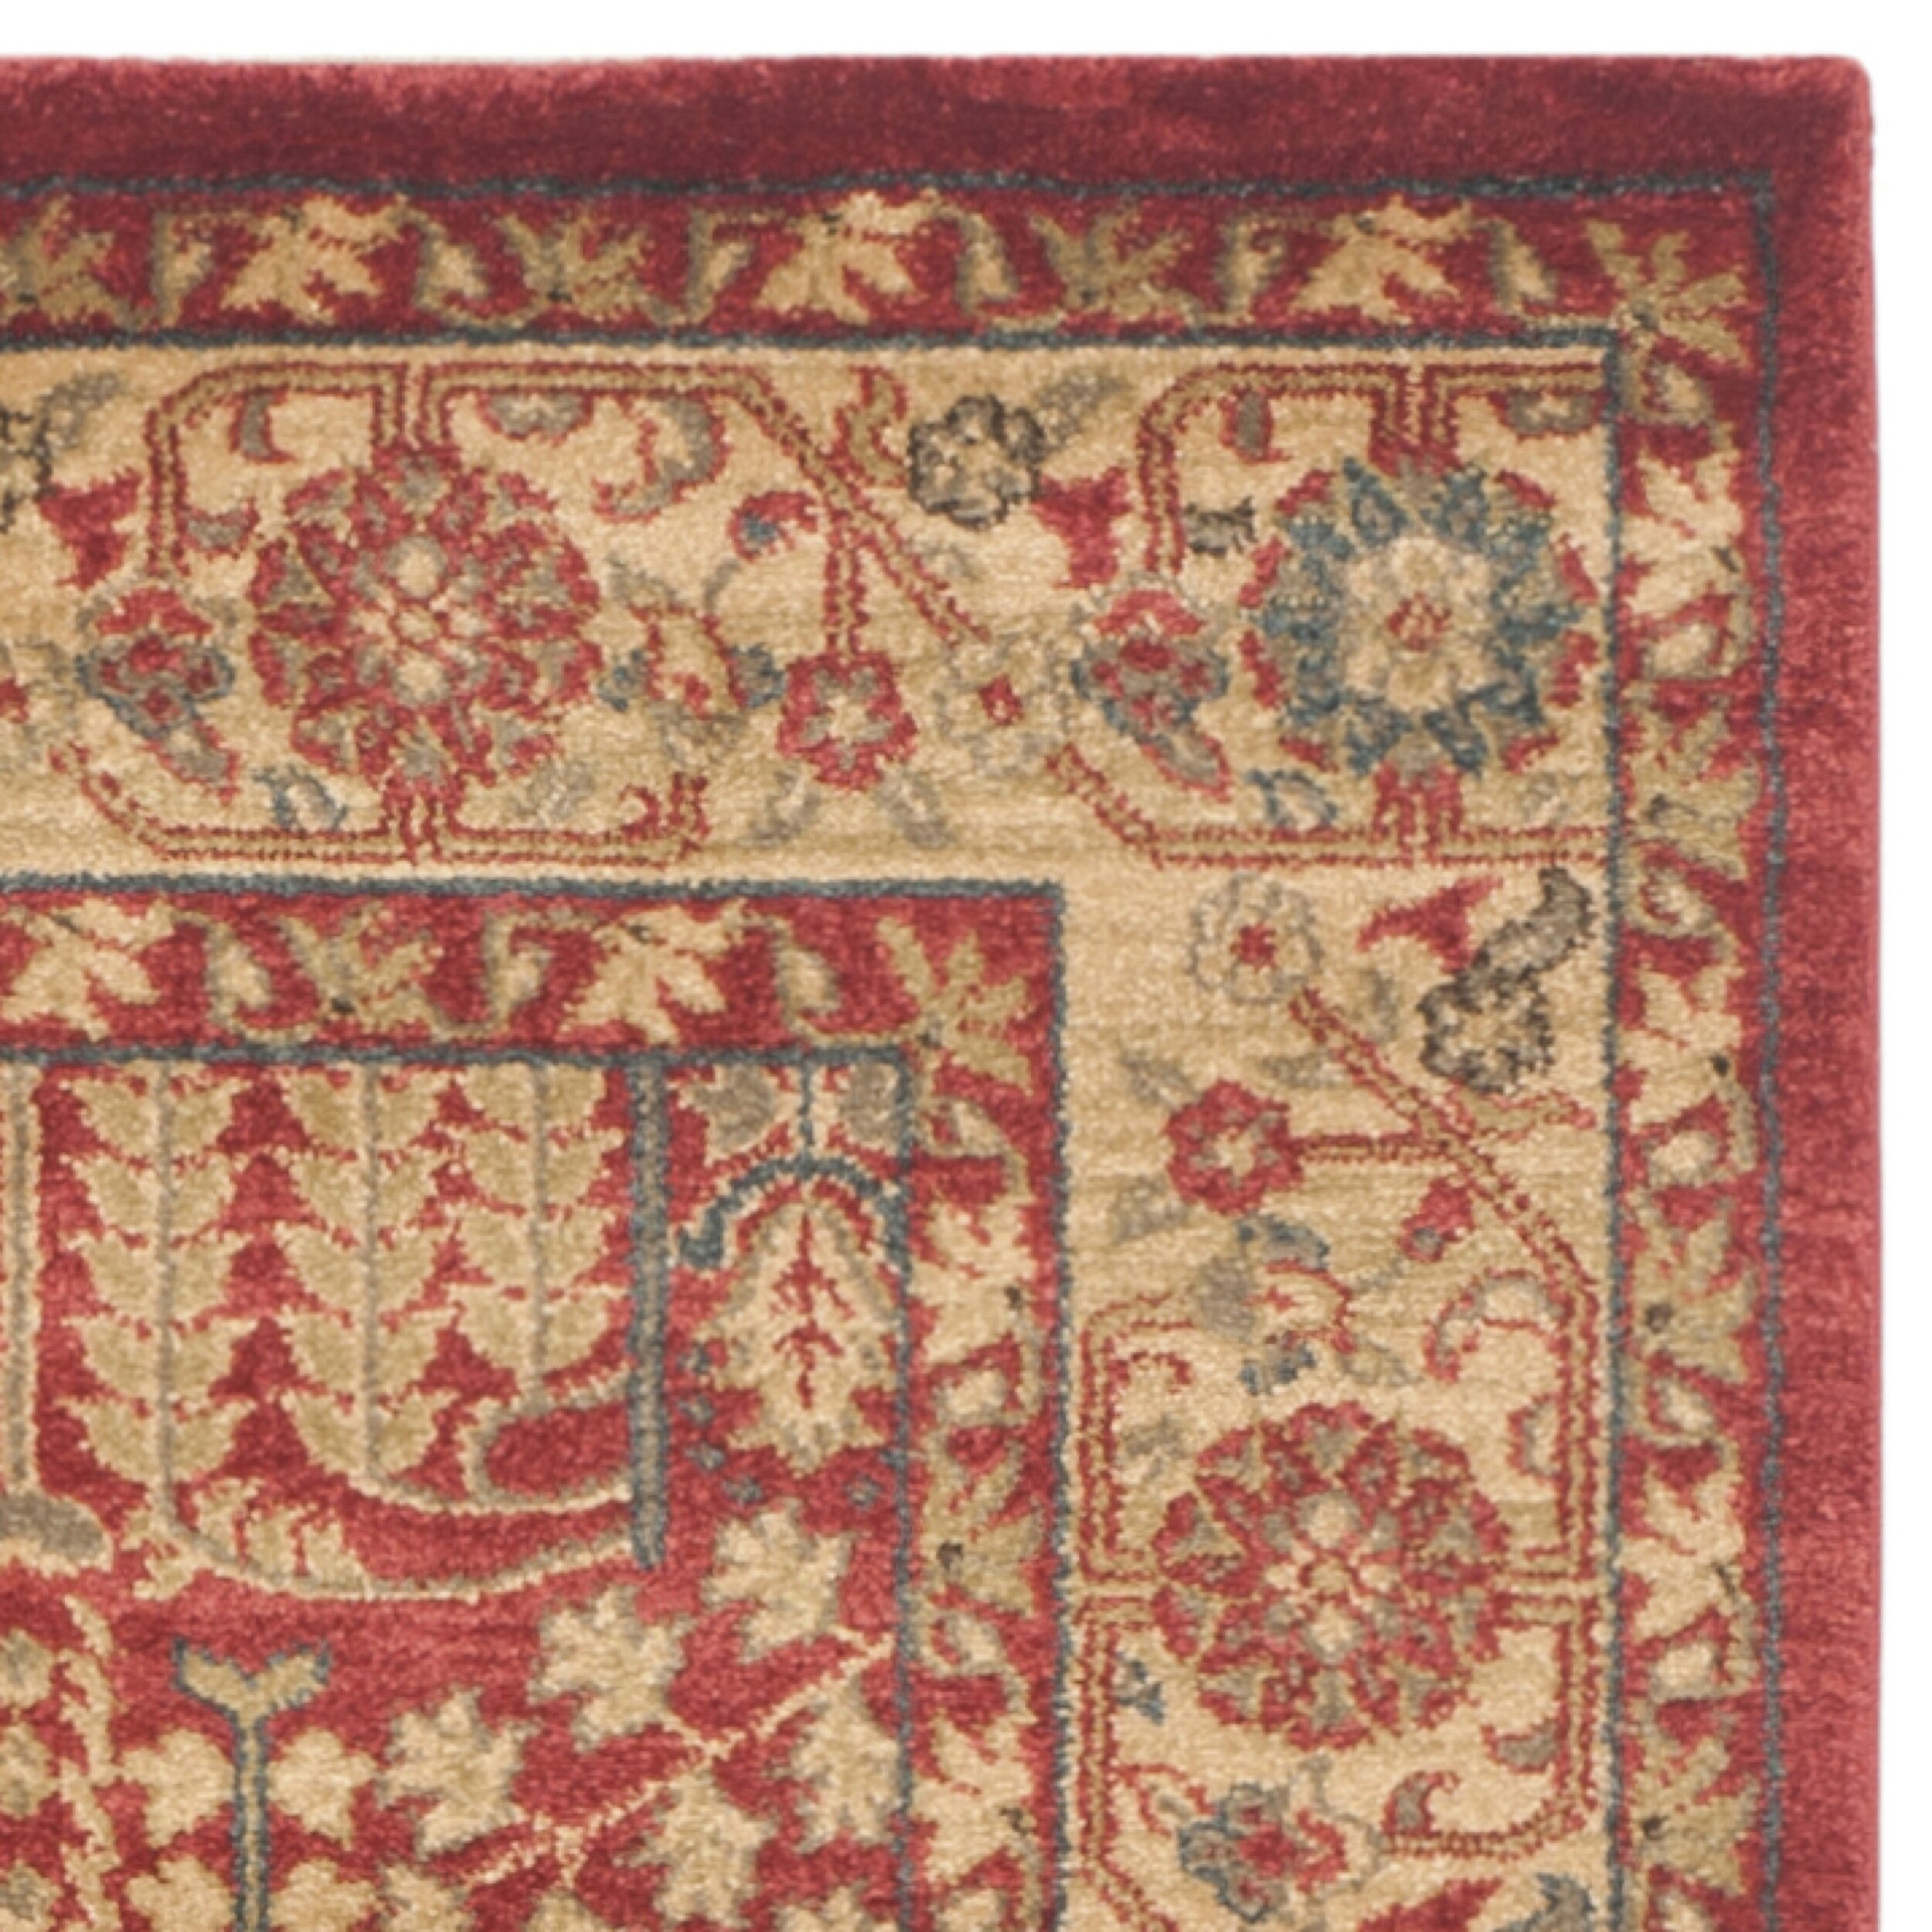 Safavieh Mahal RedNatural Area Rug amp Reviews Wayfair : Safavieh Mahal Red Natural Area Rug MAH697A from www.wayfair.com size 2500 x 2500 jpeg 1323kB